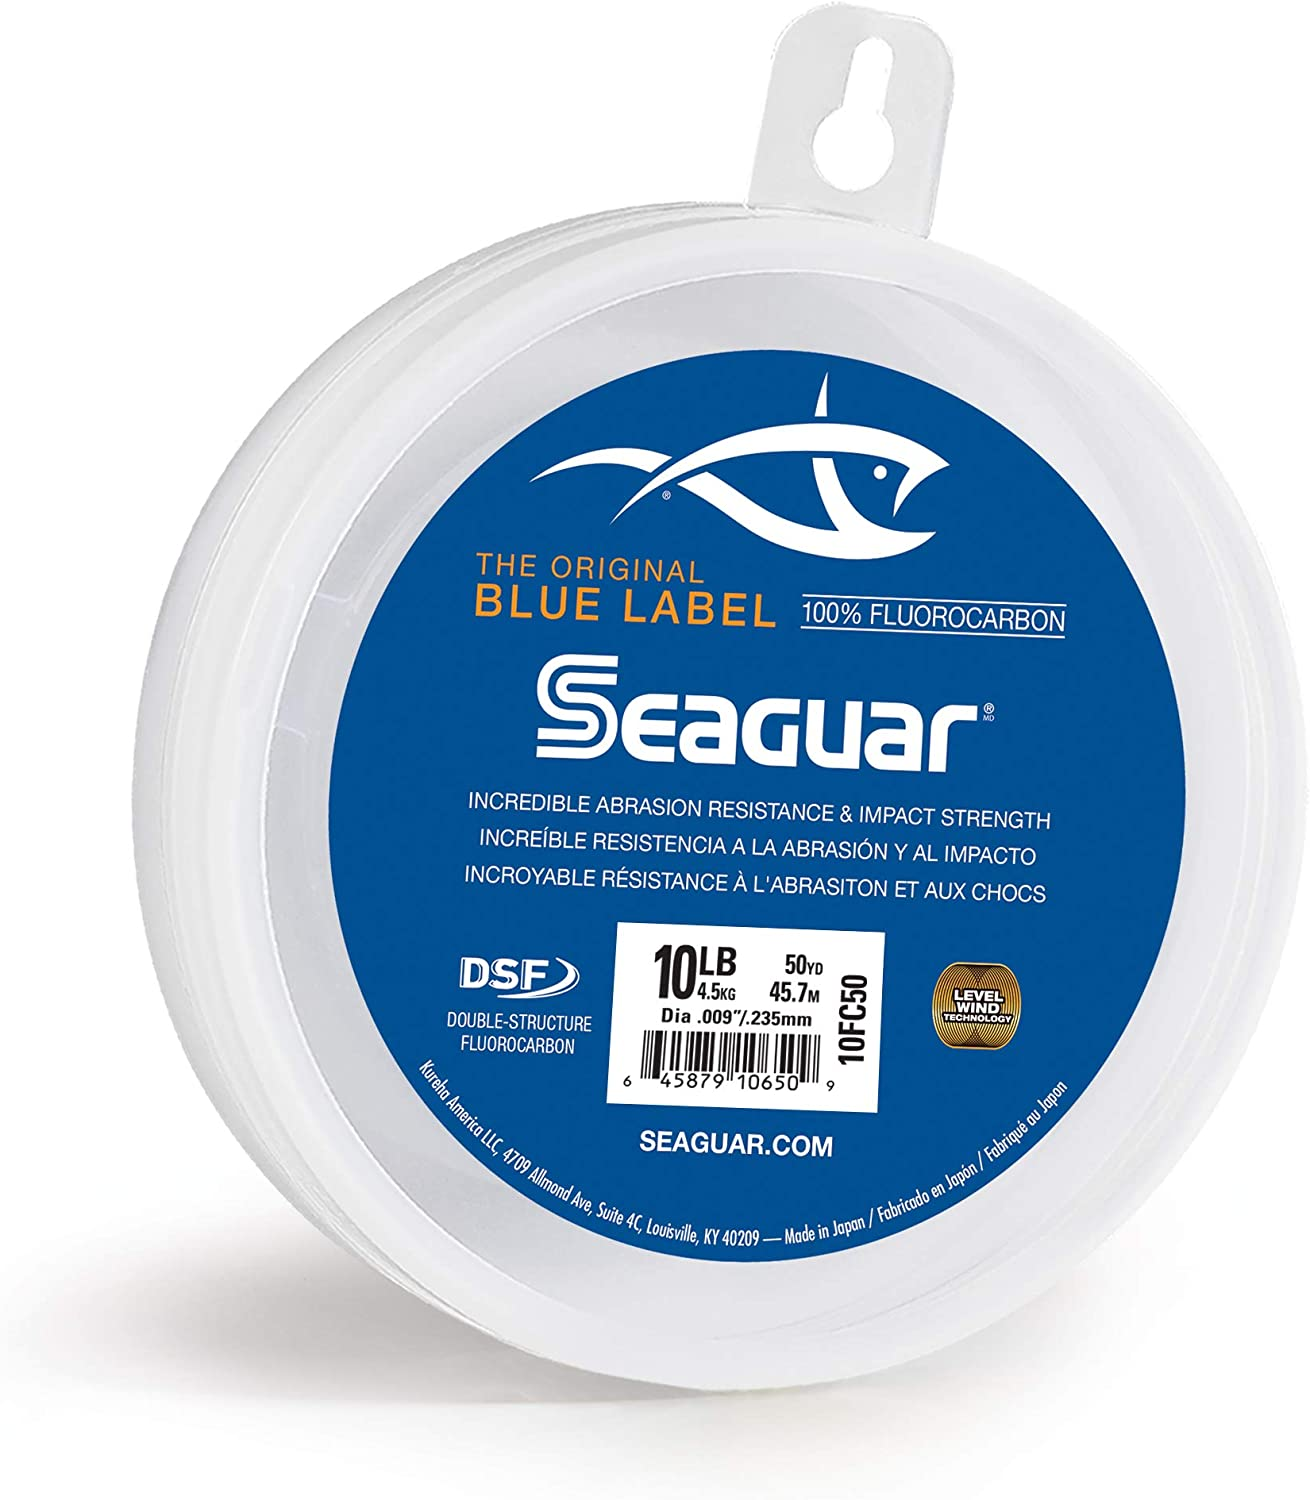 Seaguar Blue Label 50 Yards Fluorocarbon Leader (package may vary)